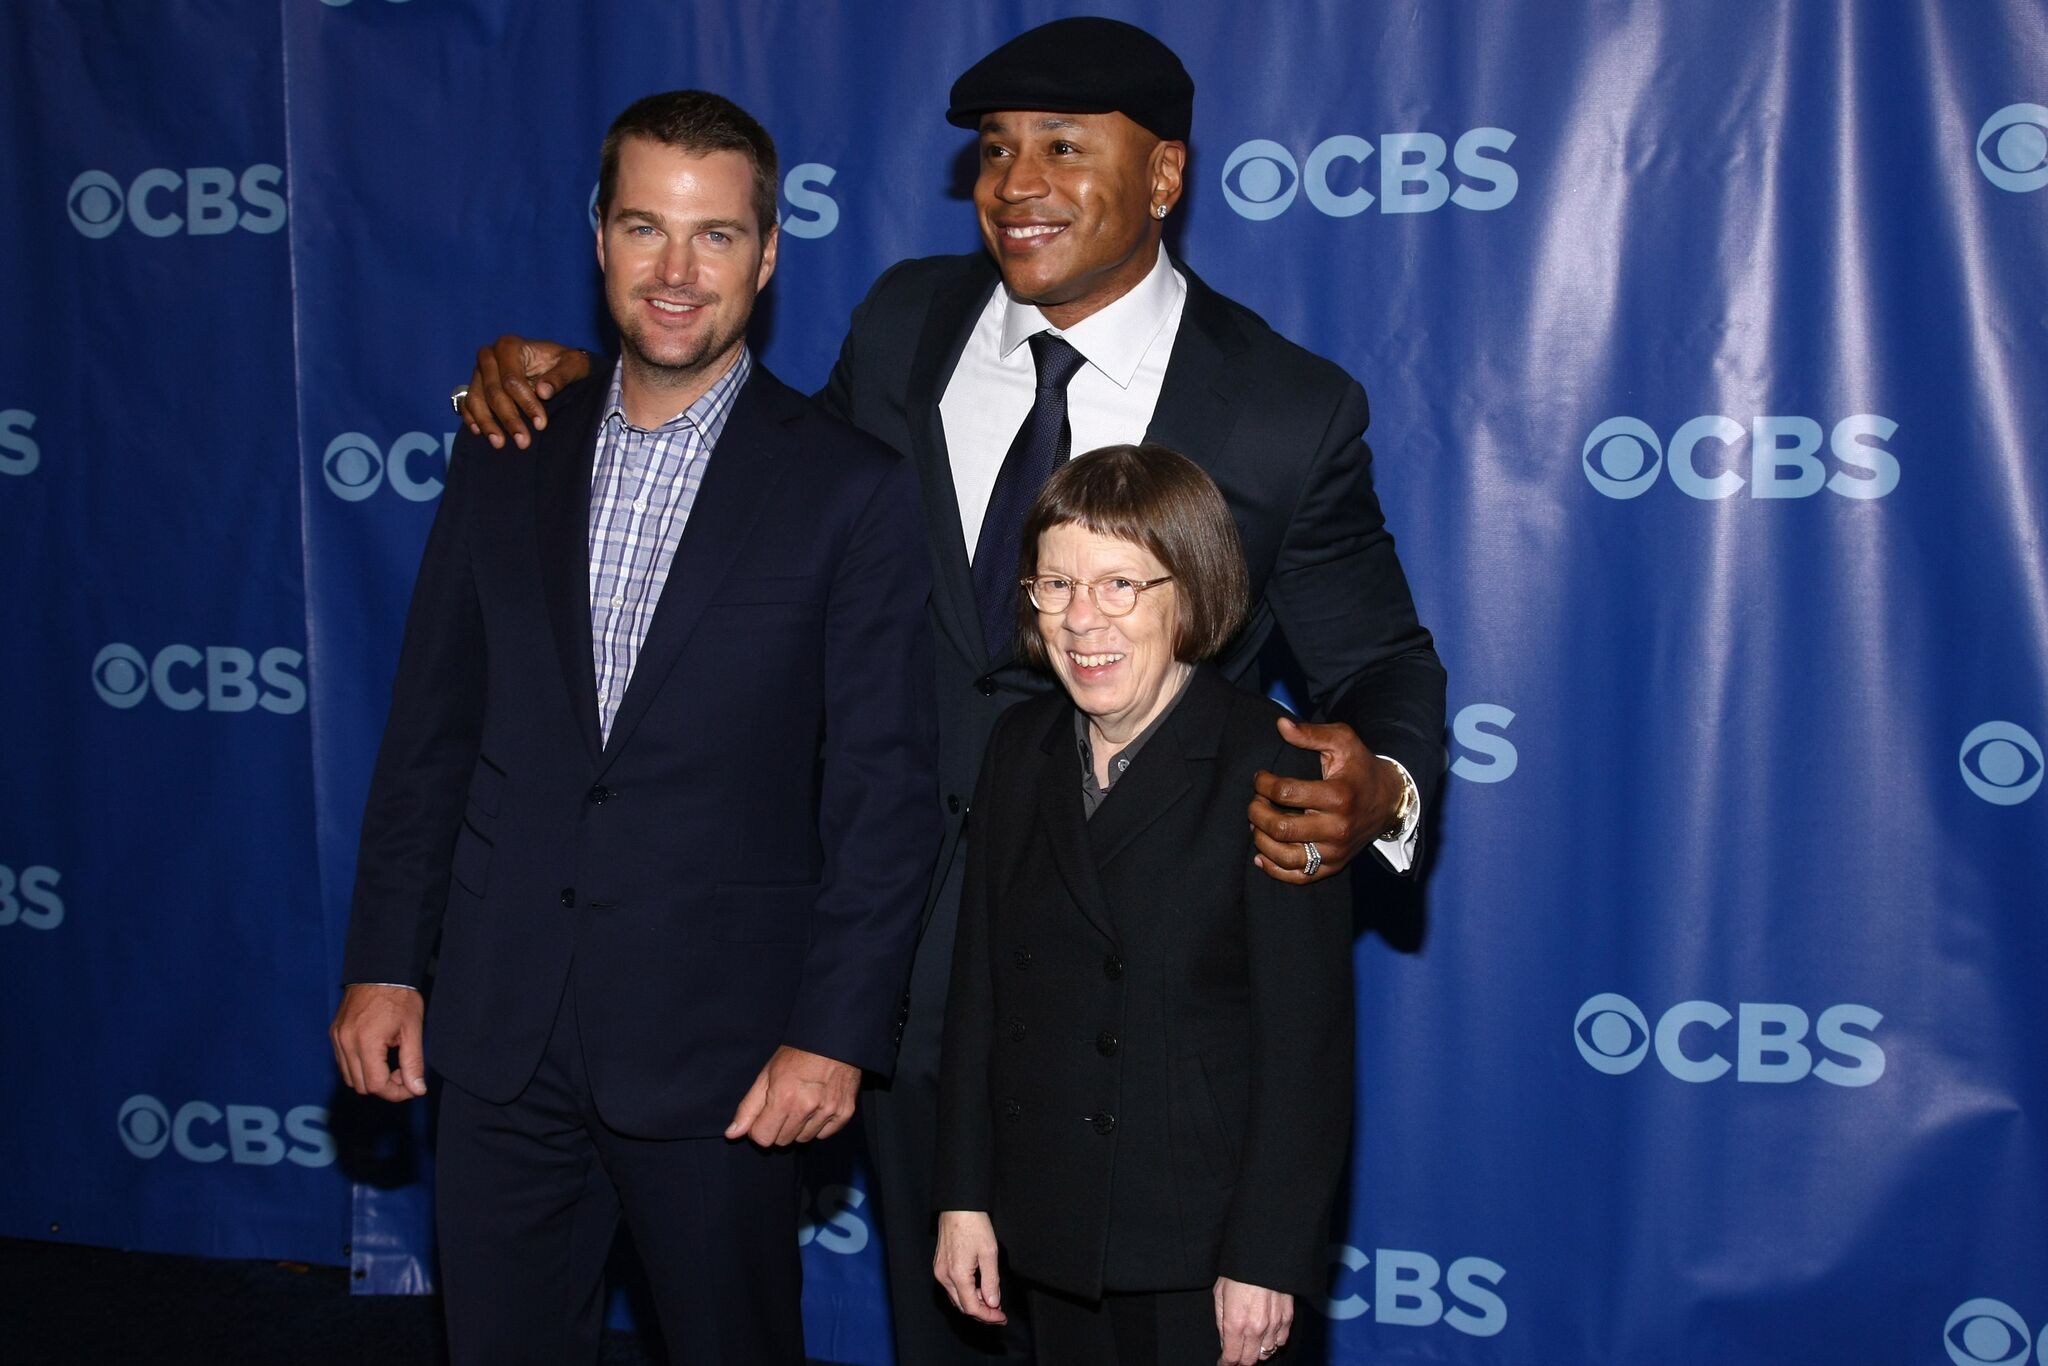 Chris O'Donnell, LL Cool J and Linda Hunt at the 2011 CBS Upfront at The Tent  | Getty Images / Global Images Ukraine